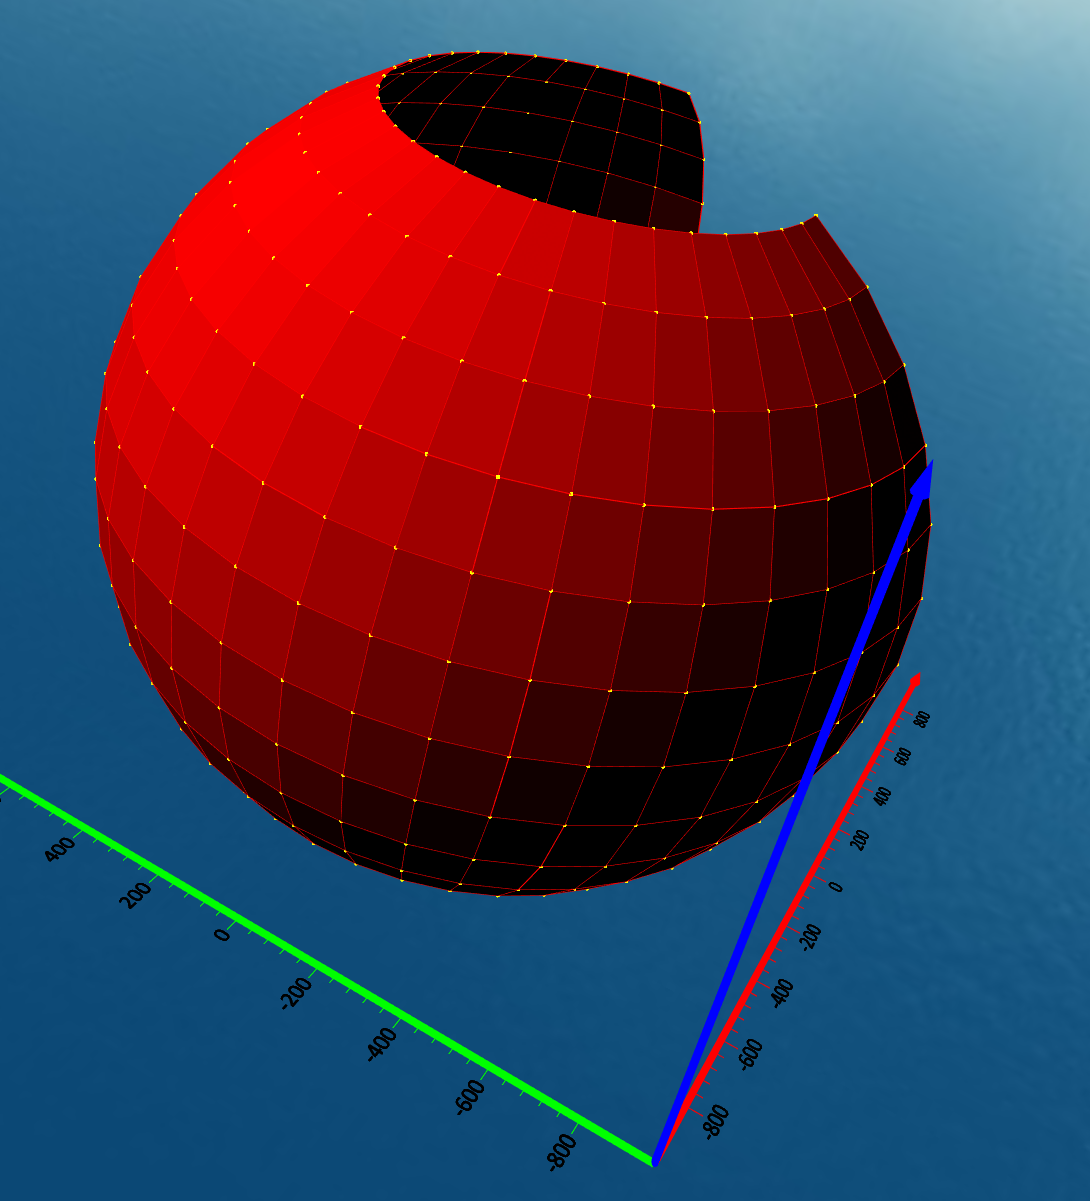 Sphere_surface_in_3D_view.PNG